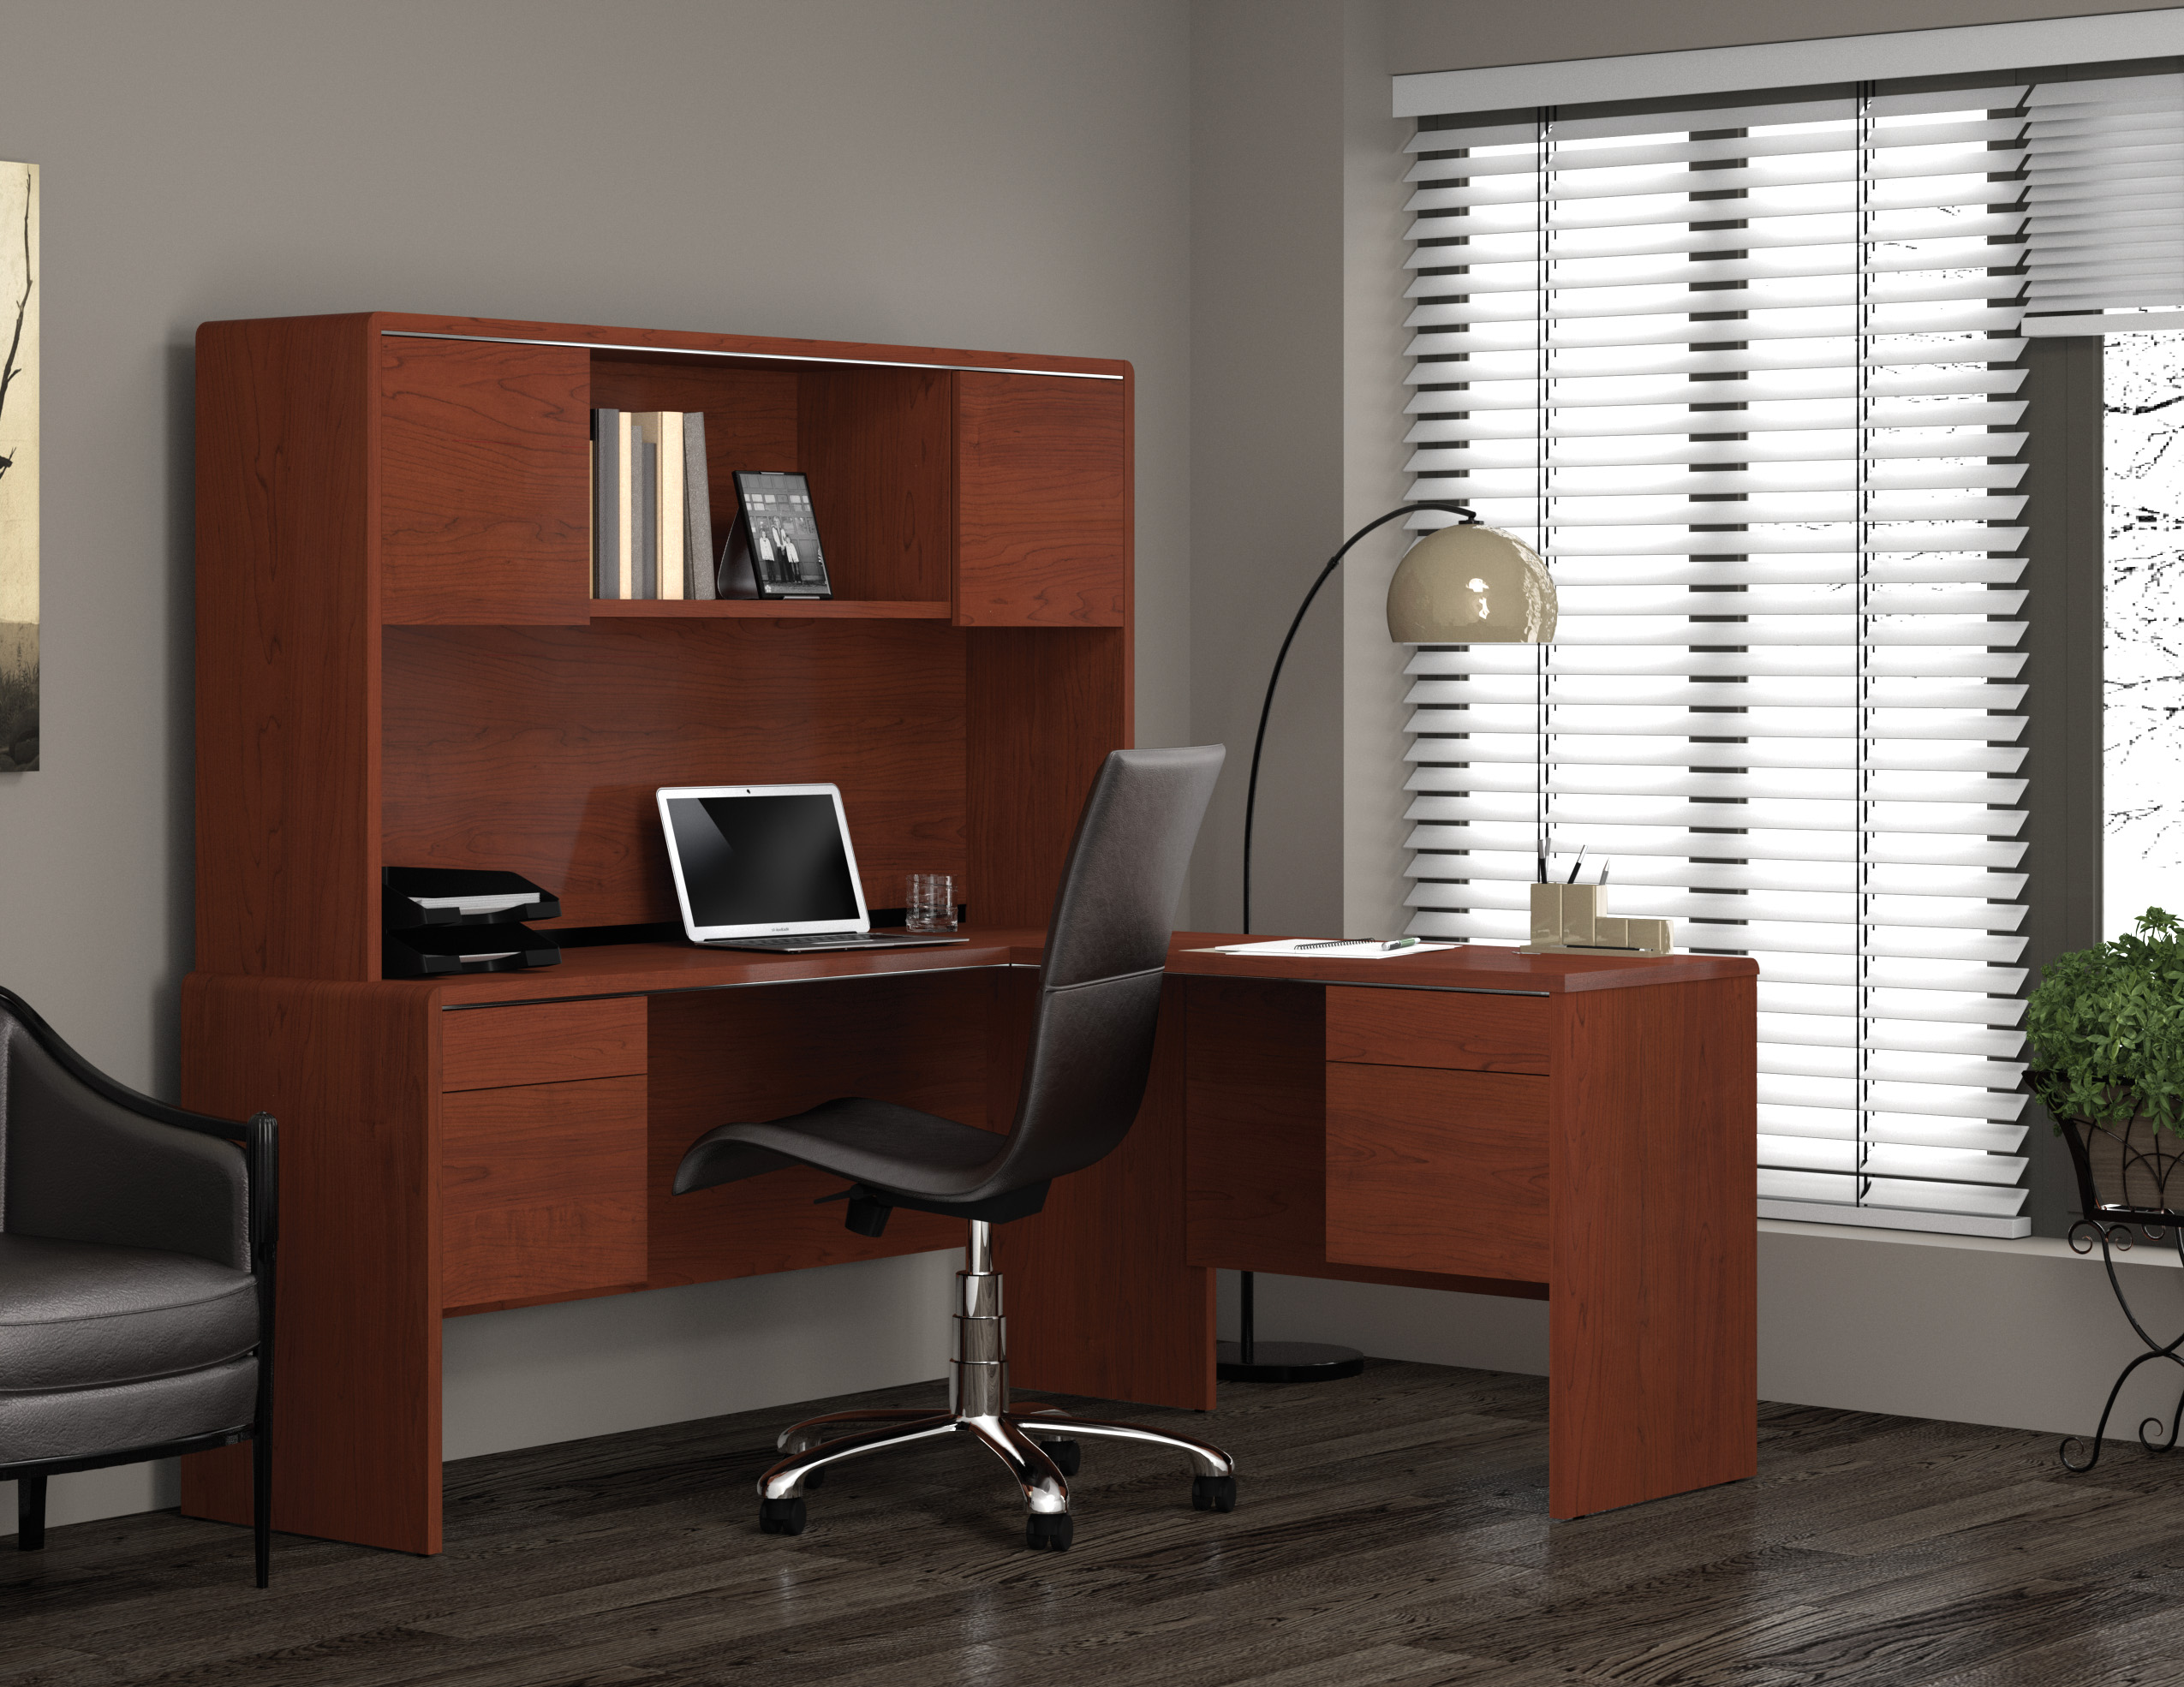 good home office ideas with wooden l shaped desk with hutch plus laptop or computer set stand plus chair and floor standing lamp on gray floor